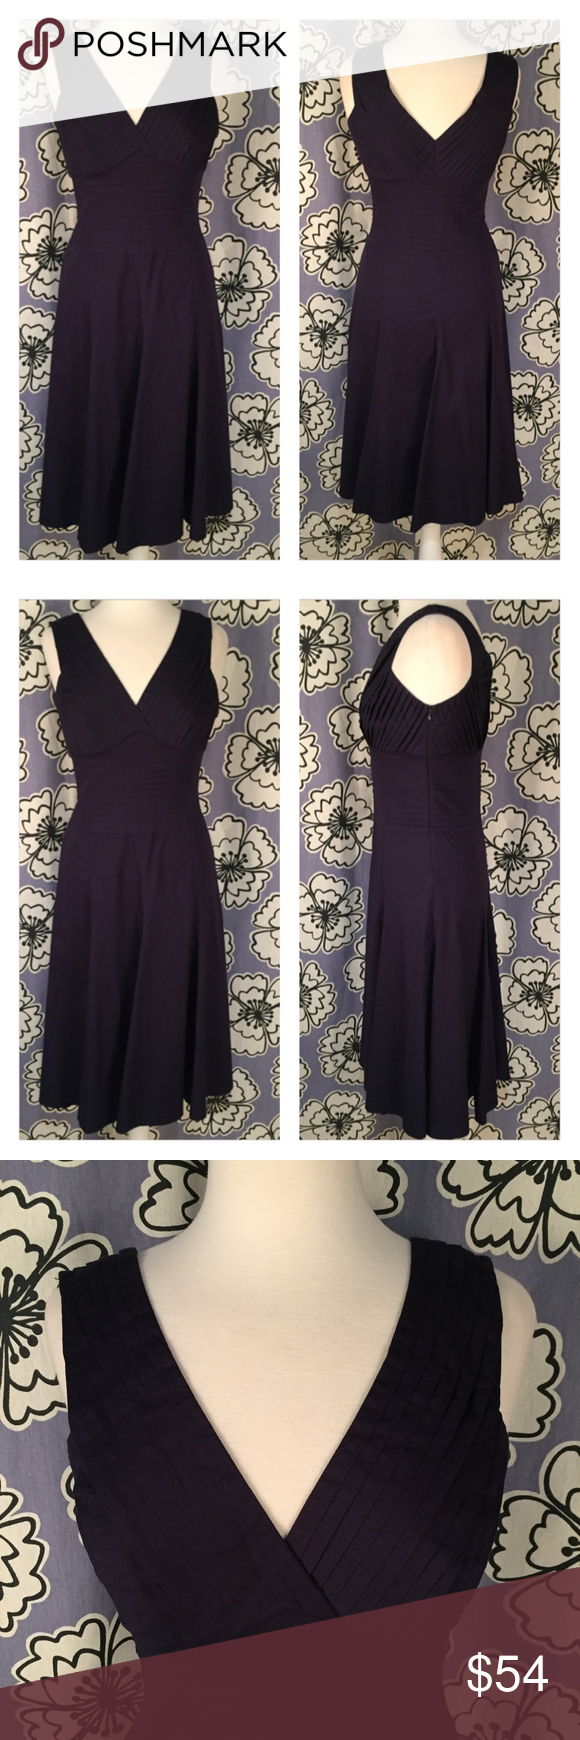 88ae0b5090eee Odille Anthropologie Navy Blue Dress Size 4 Brand: Odille; Anthropologie  Size: 4 Description: V neck fit and flare; tight bodice pleating; midi  length; ...